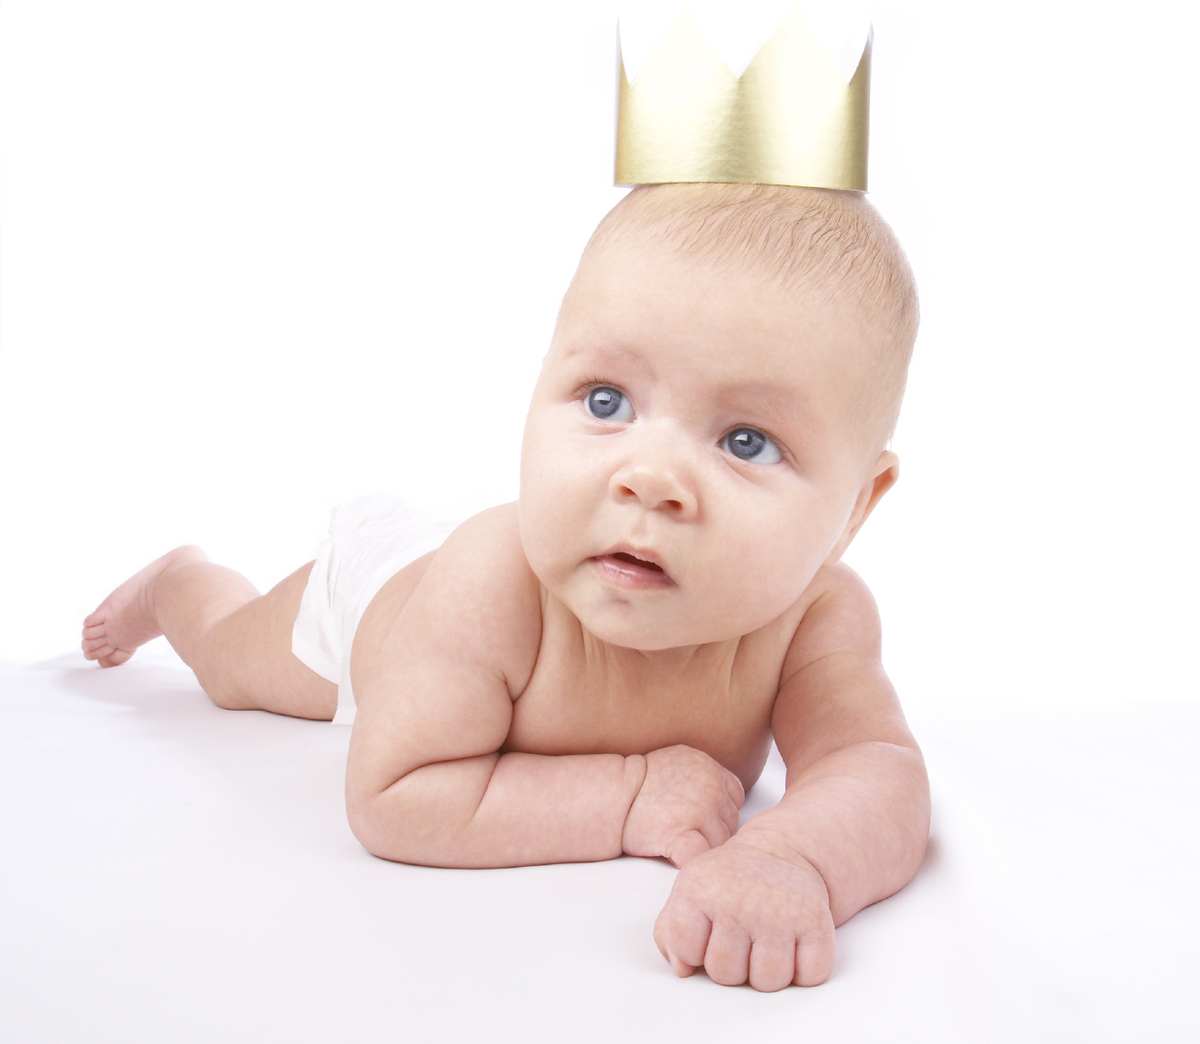 20 Really Great Royal Baby Titles For Classy Parents